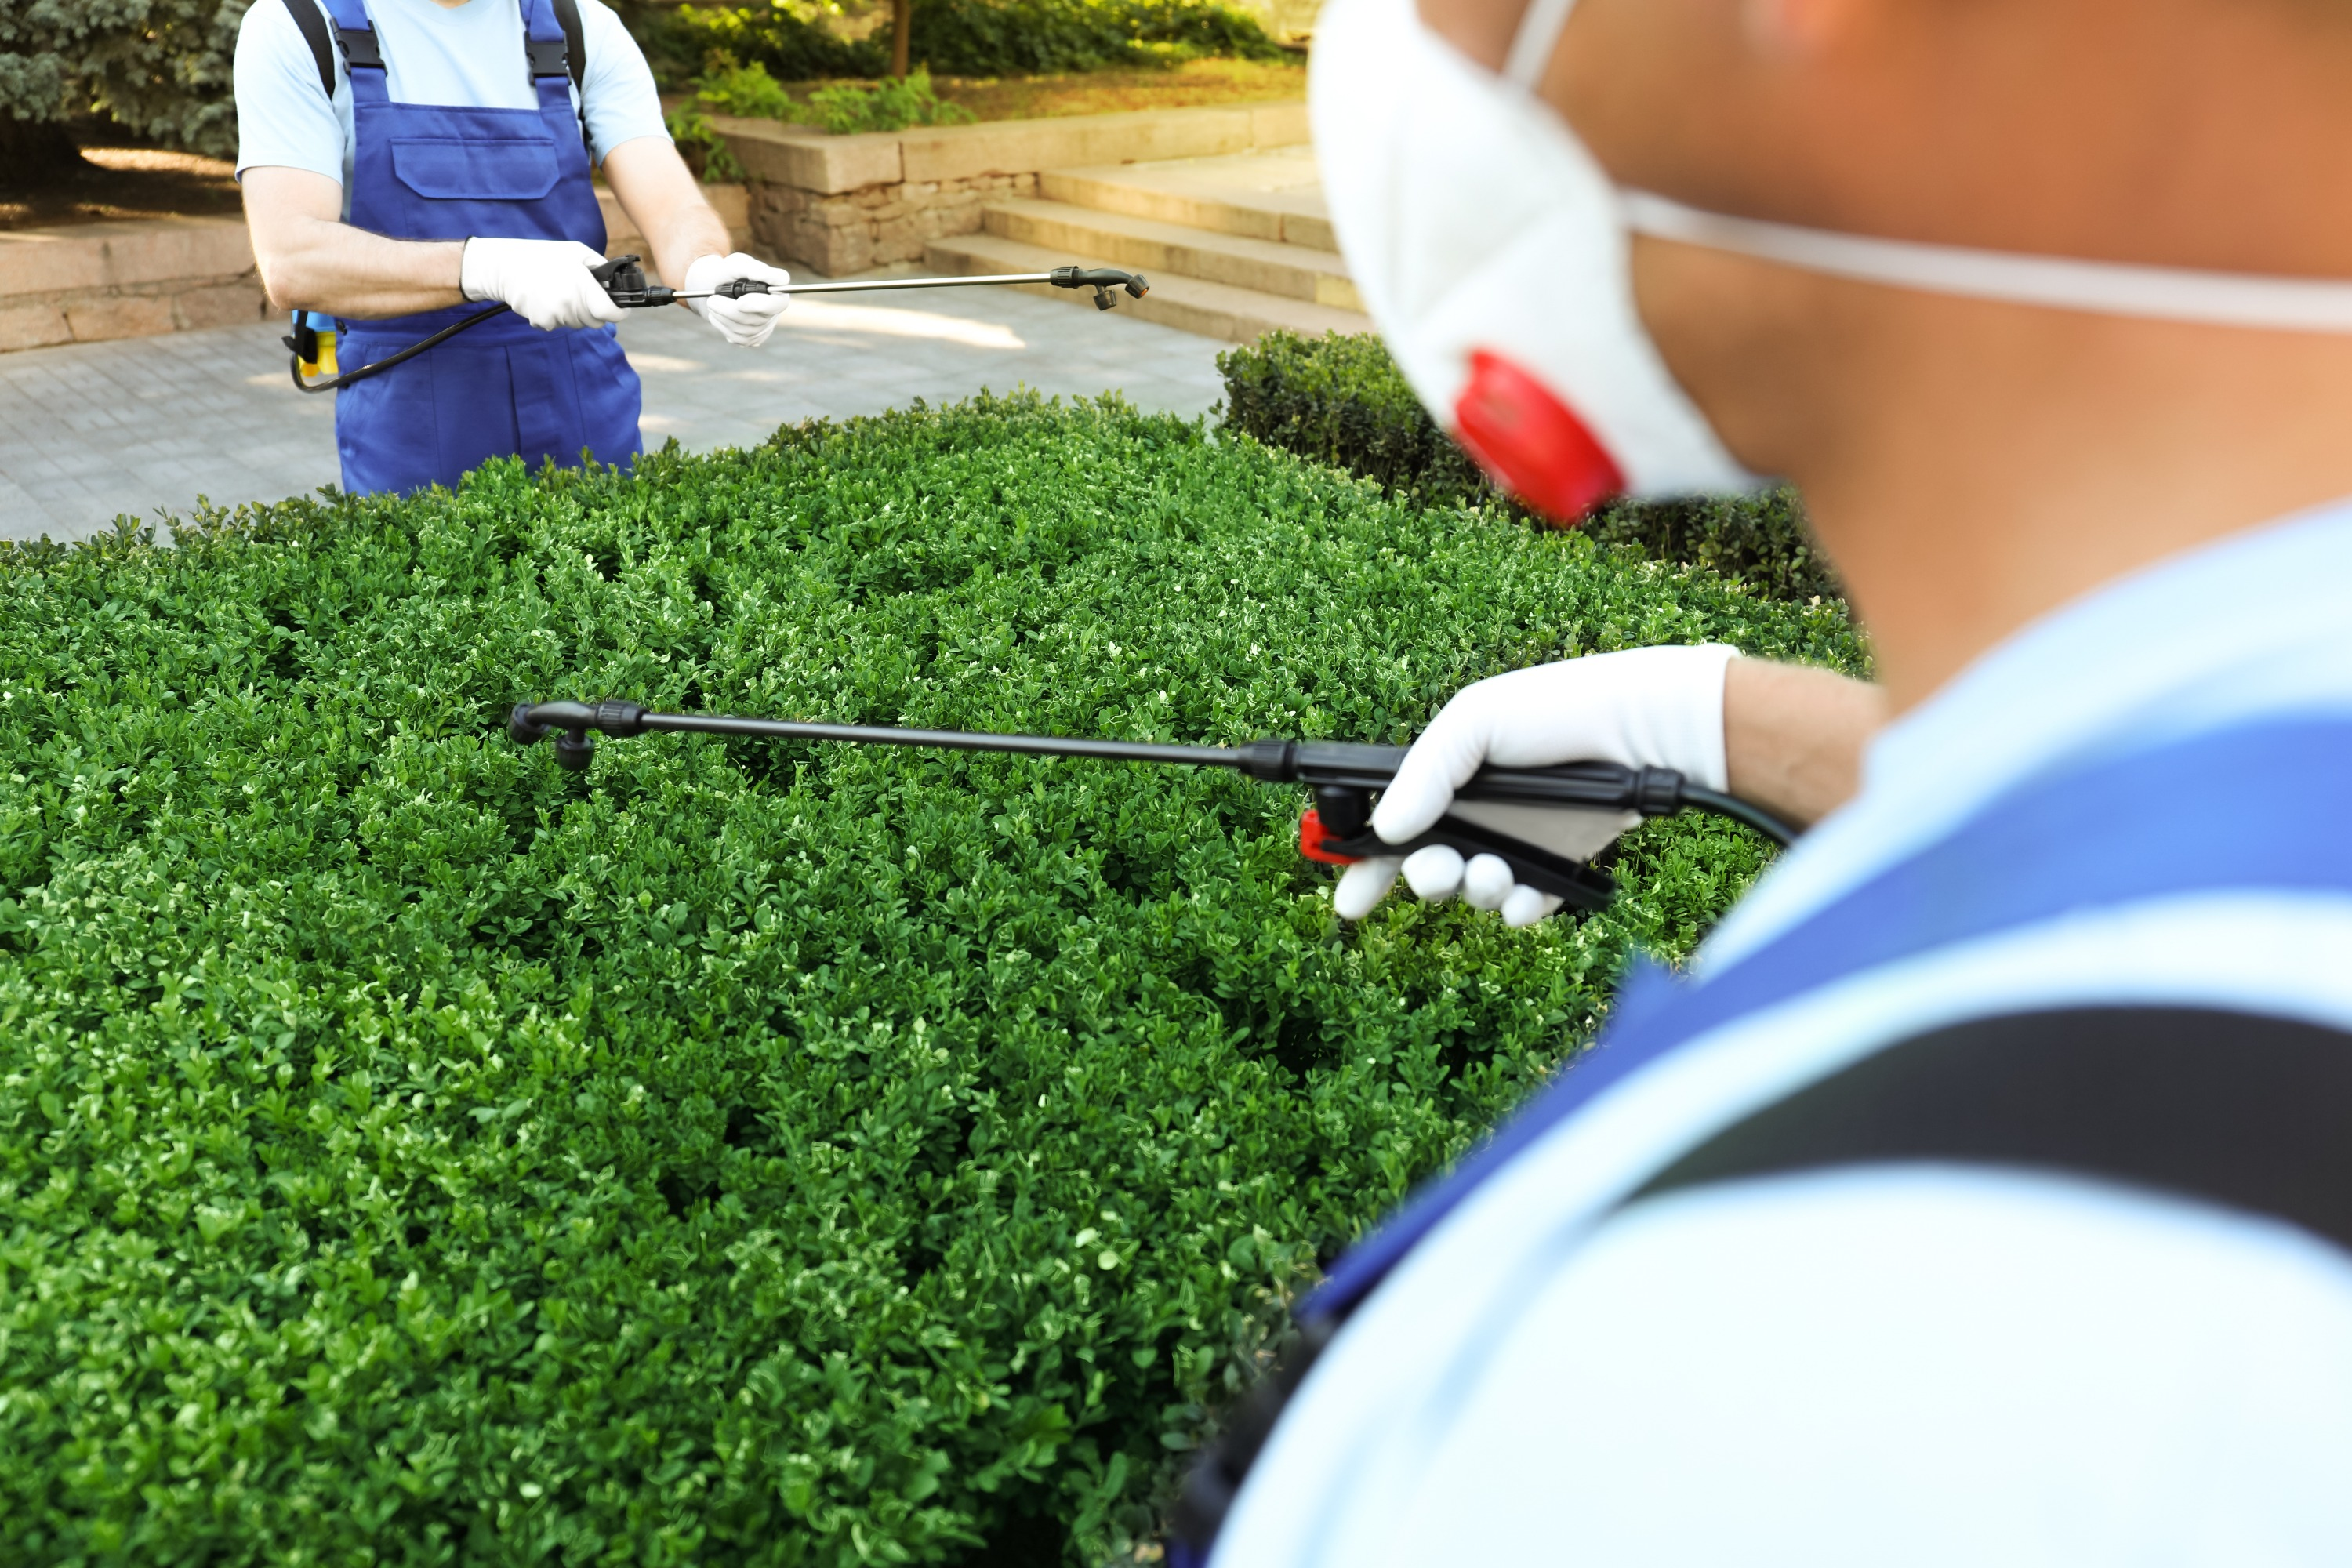 A pest control specialist wearing a white mask and blue shirt uses a black wand to spray pest control solution on green bushes while another pest control specialist works in the distance.